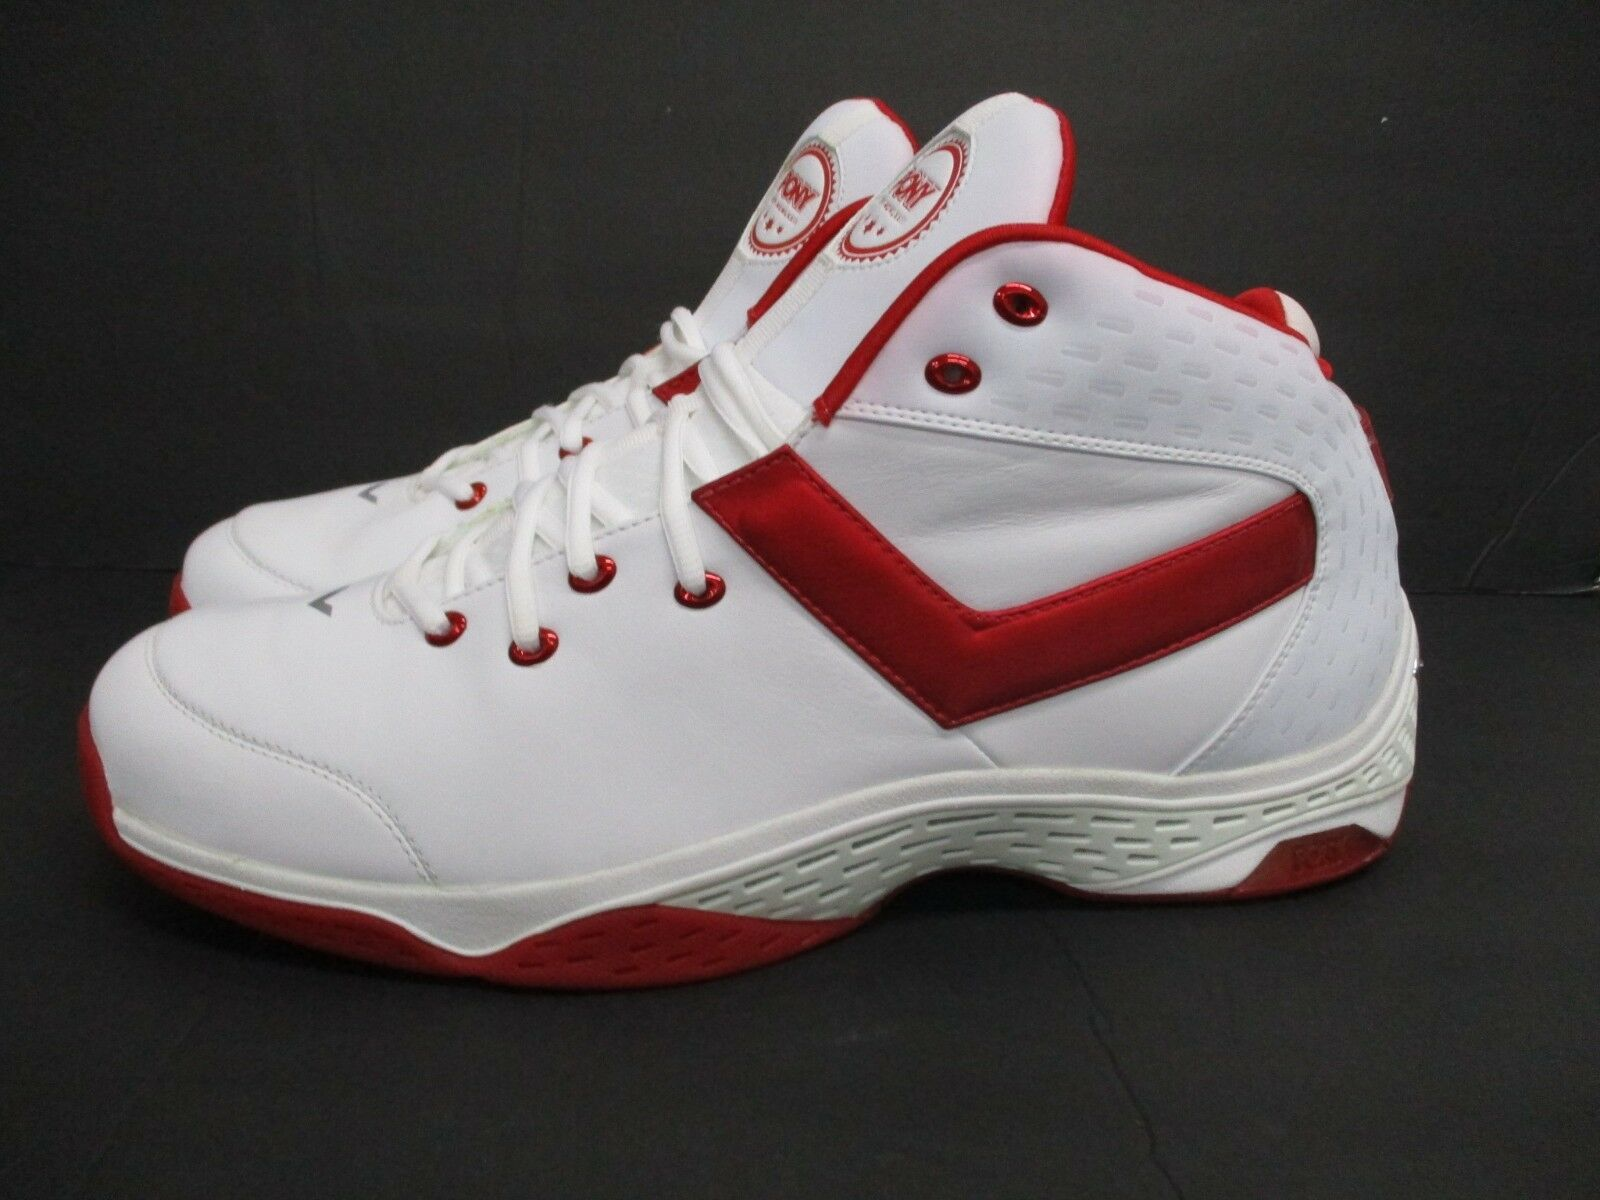 New in Box  Pony Men's EKG High Top White Red Size  17